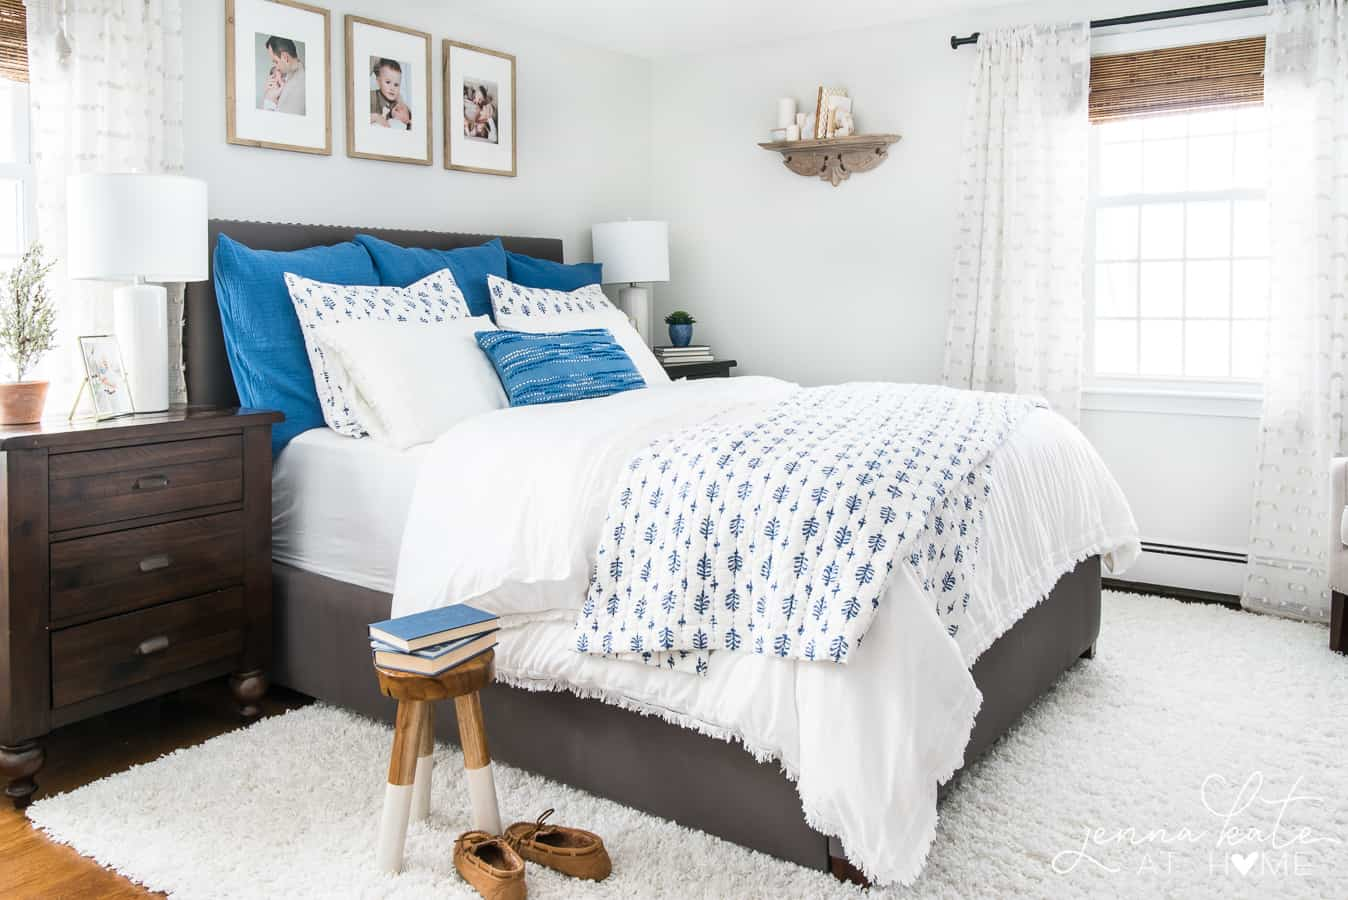 Make over your bedroom without paint or new furniture - just switch out the bedding for a fresh new look!